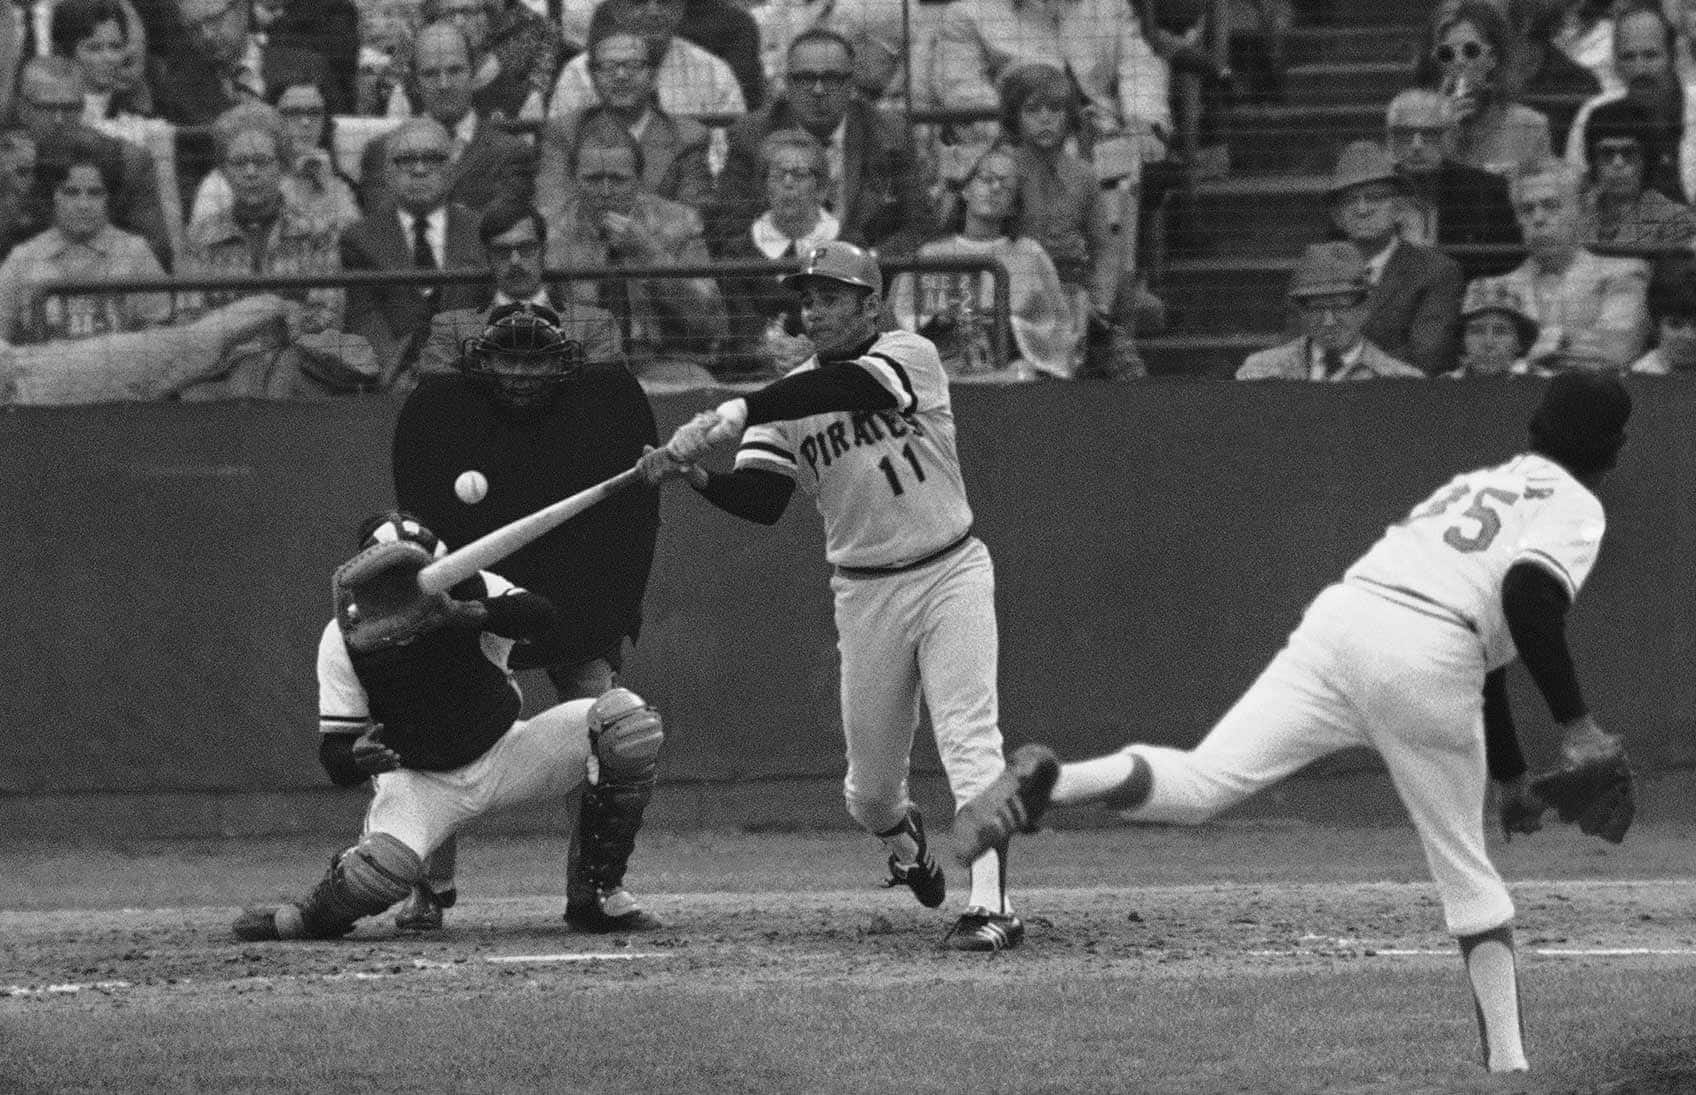 This Oct. 17, 1971, file photo shows Pittsburgh Pirates' Jose Pagan (11) hitting a double, off Baltimore Orioles pitcher Mike Cuellar, to drive in the eventual winning run in Game 7 of the World Series, in Baltimore.